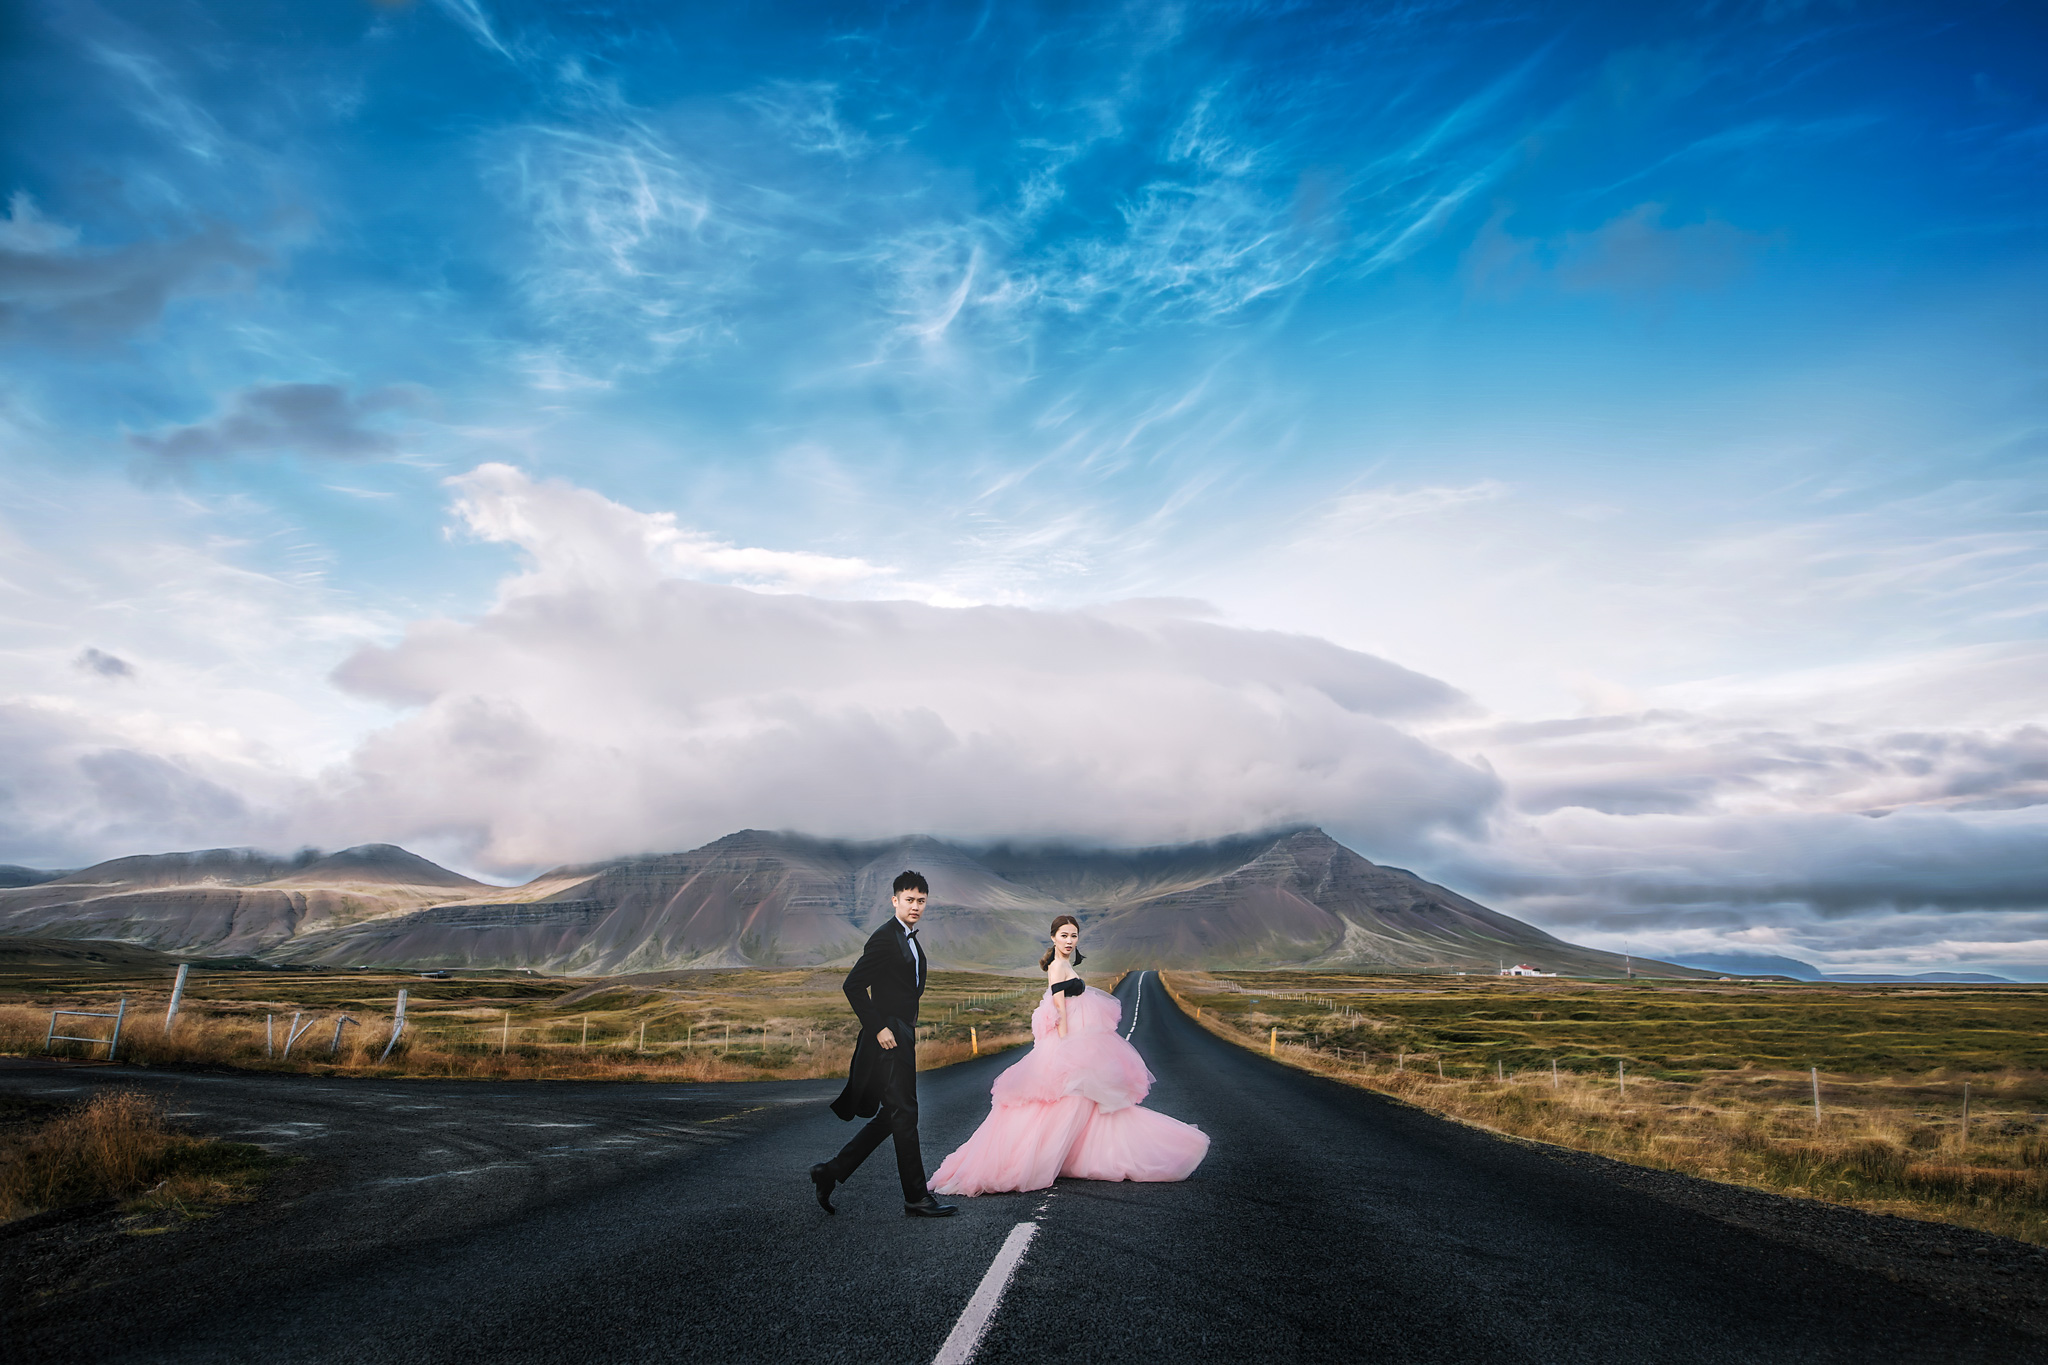 bride-and-groom-walking-across-road-against-hills-photo-by-edwin-tan-photography